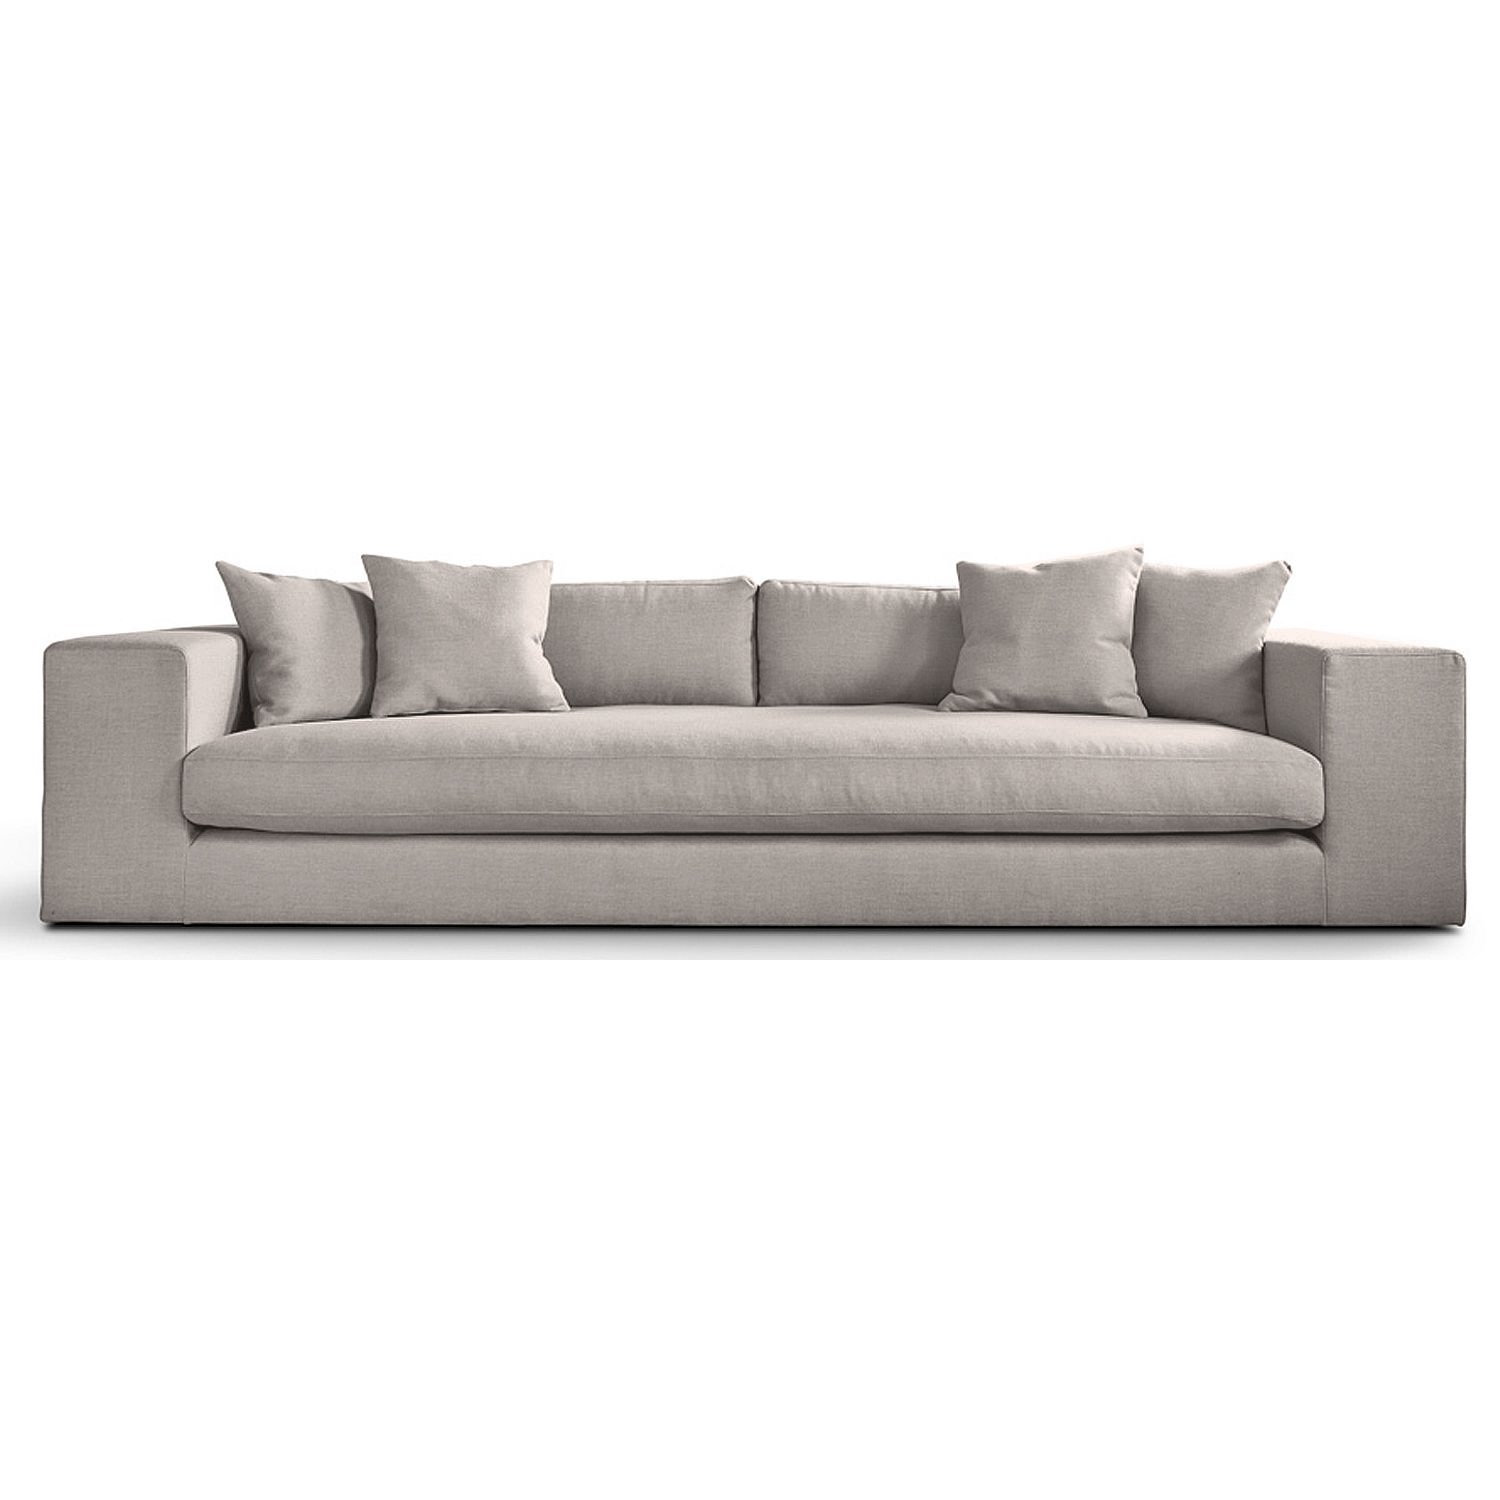 Barlow Fabric 4 Seater Sofa Next Day Delivery Barlow Fabric 4 Throughout 4 Seat Sofas (Image 3 of 15)